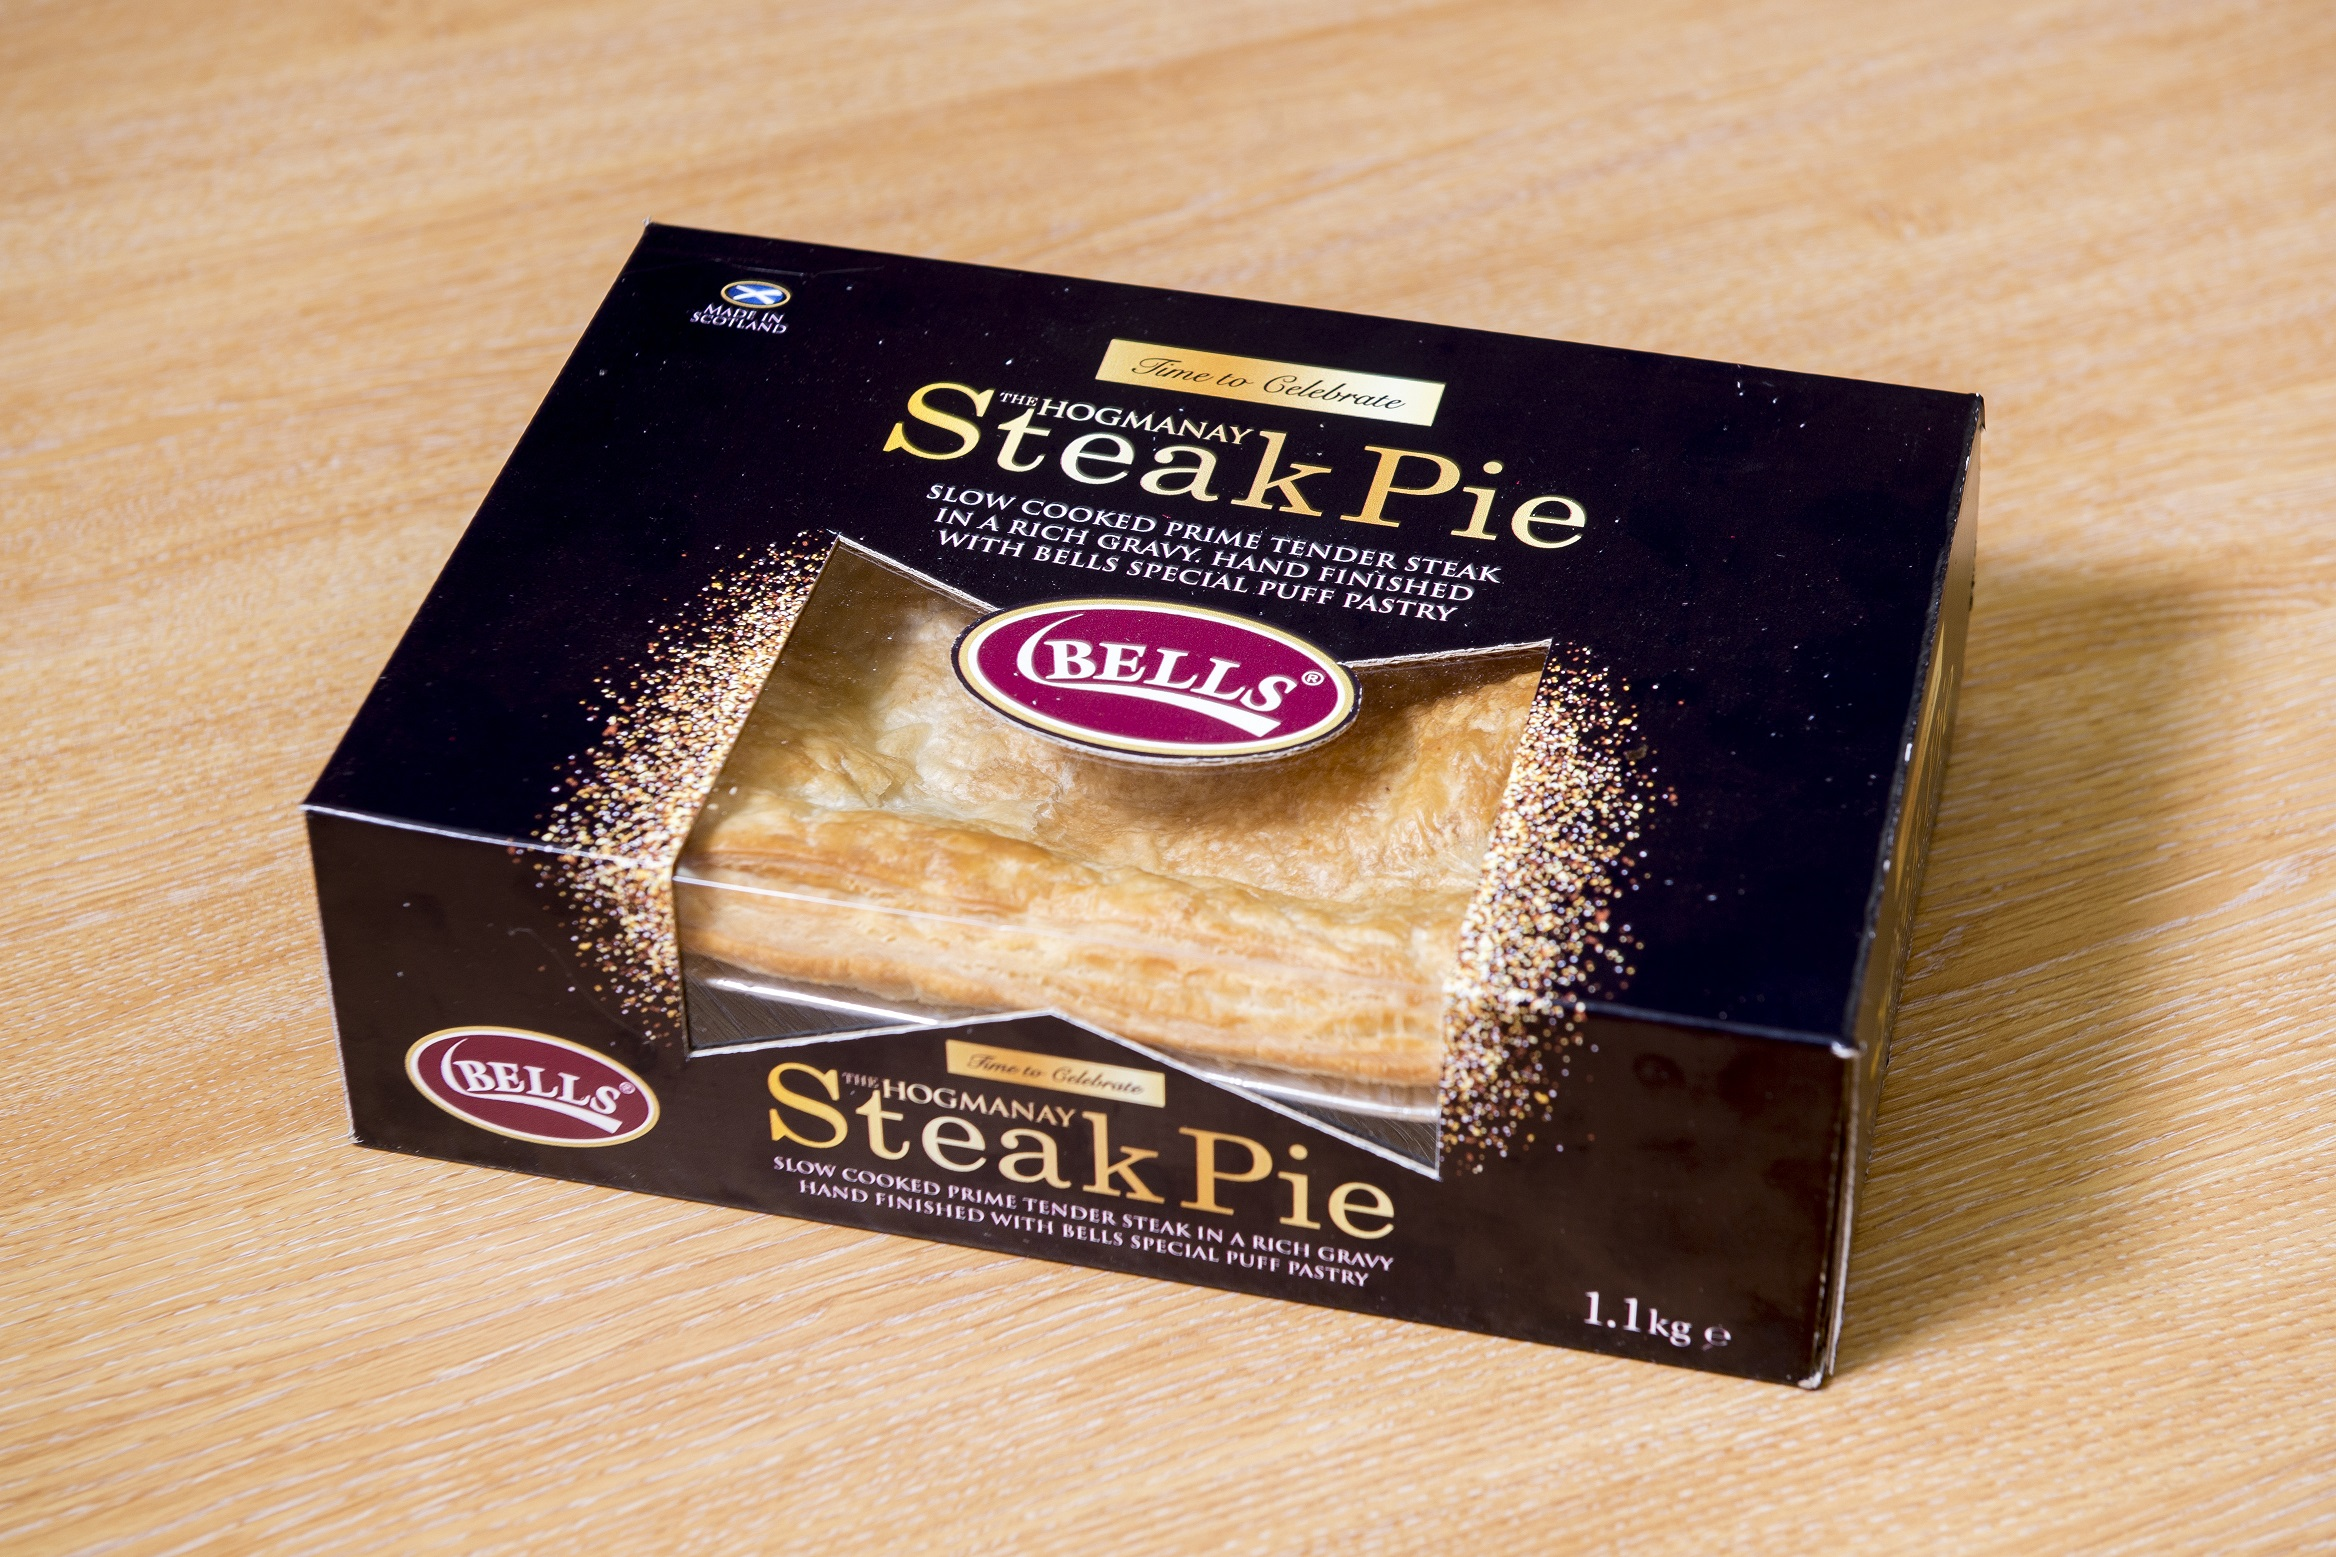 Hogmanay Steak Pie.jpg